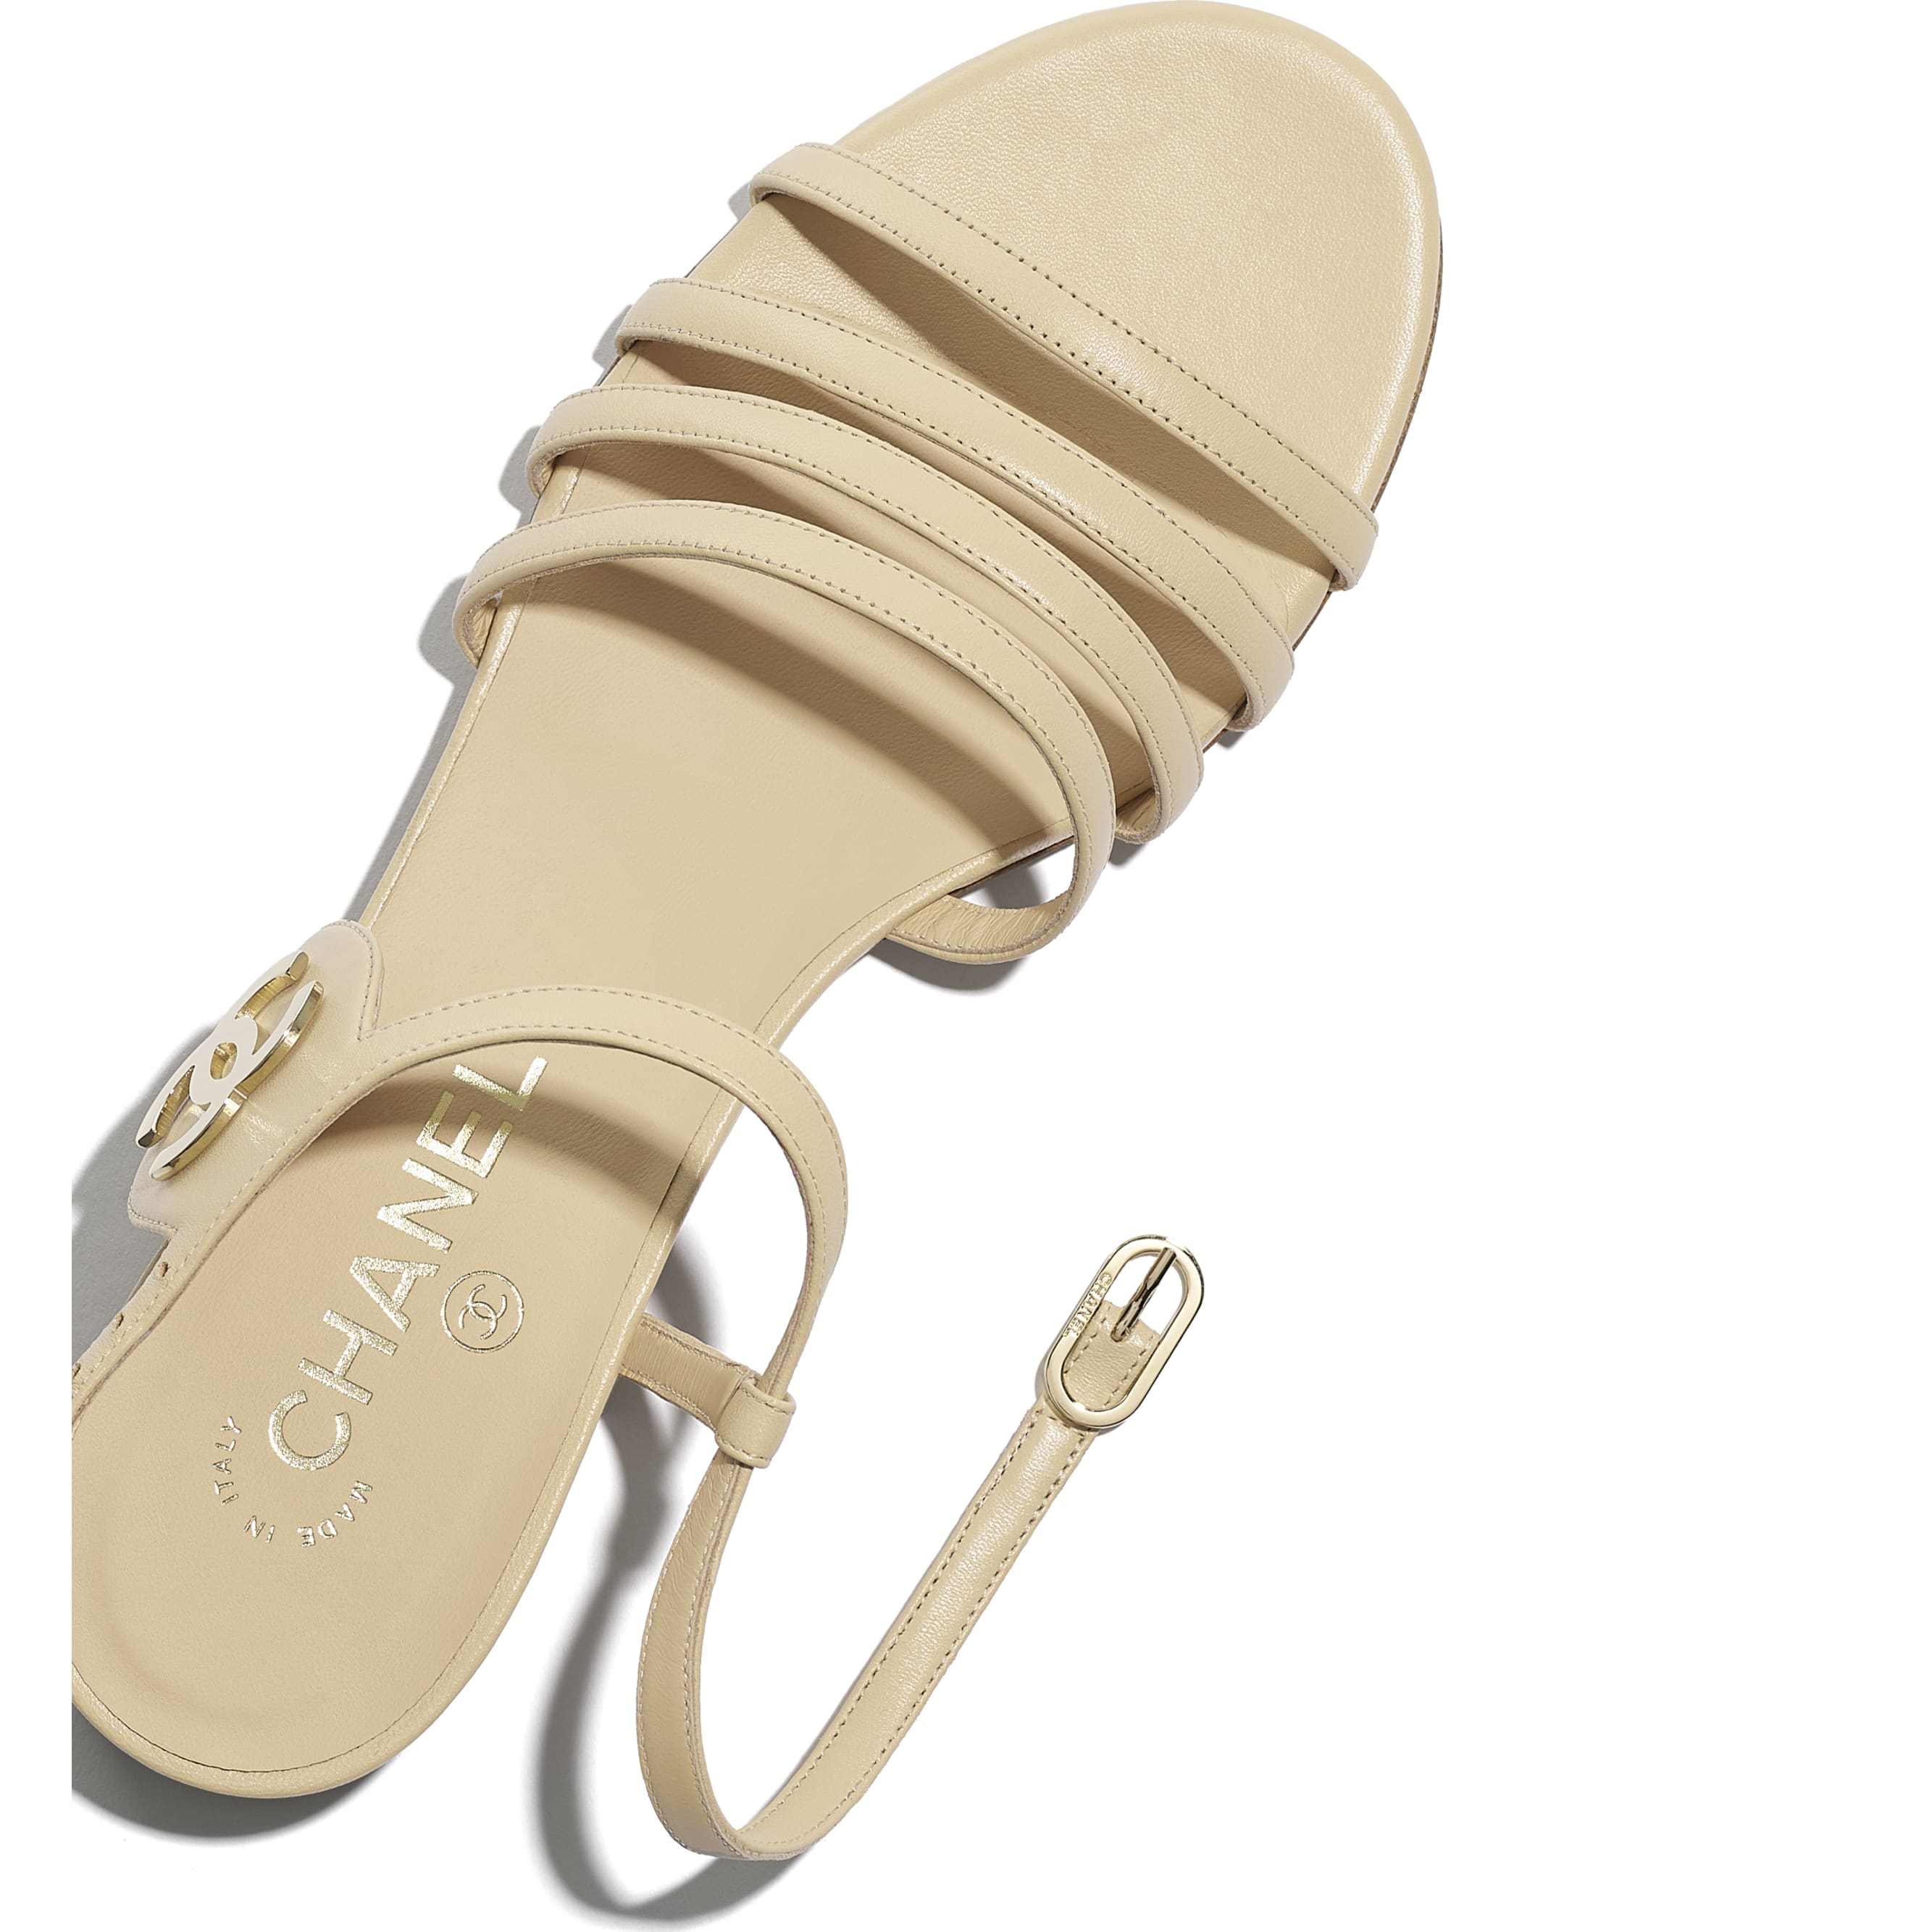 Sandals - Beige - Lambskin - CHANEL - Extra view - see standard sized version